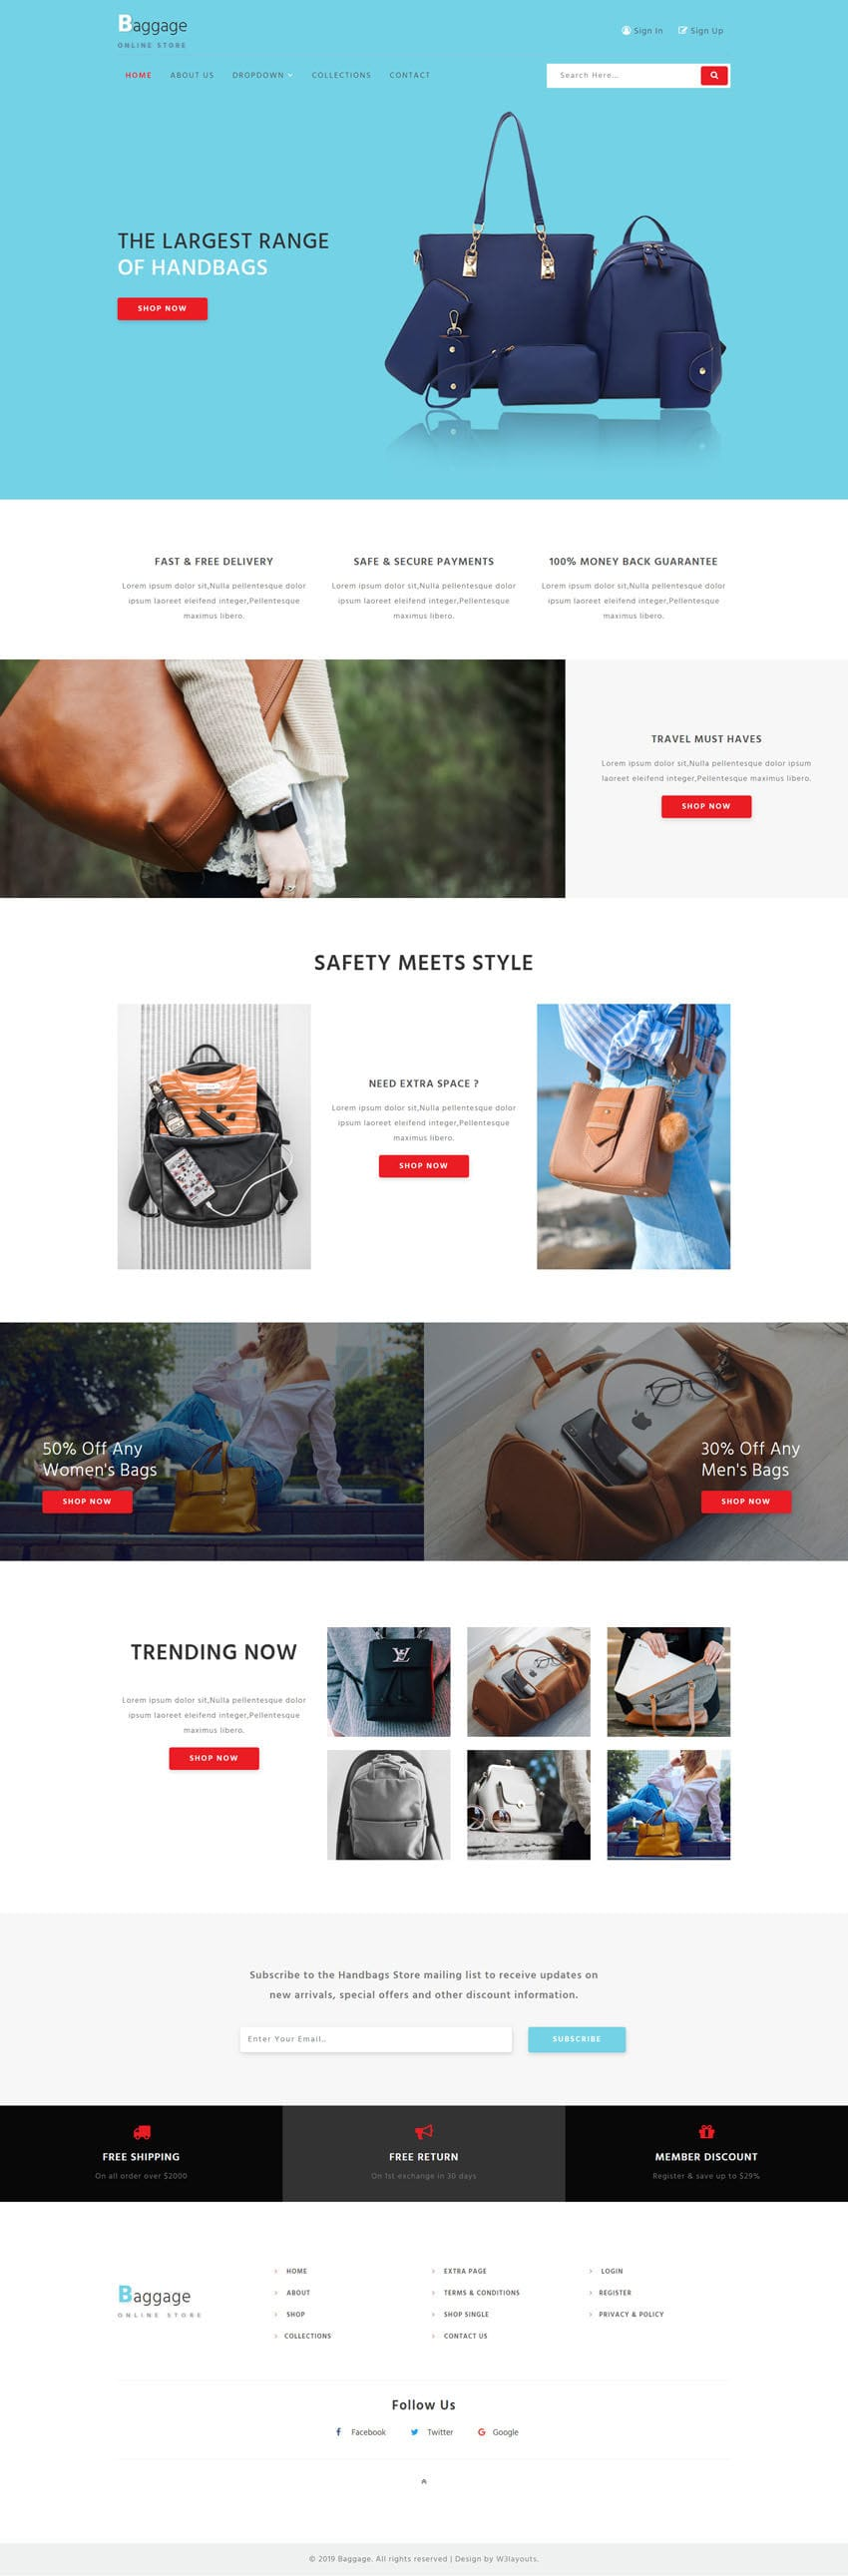 Baggage, an E-commerce category website template designed for online stores selling luxury bags.